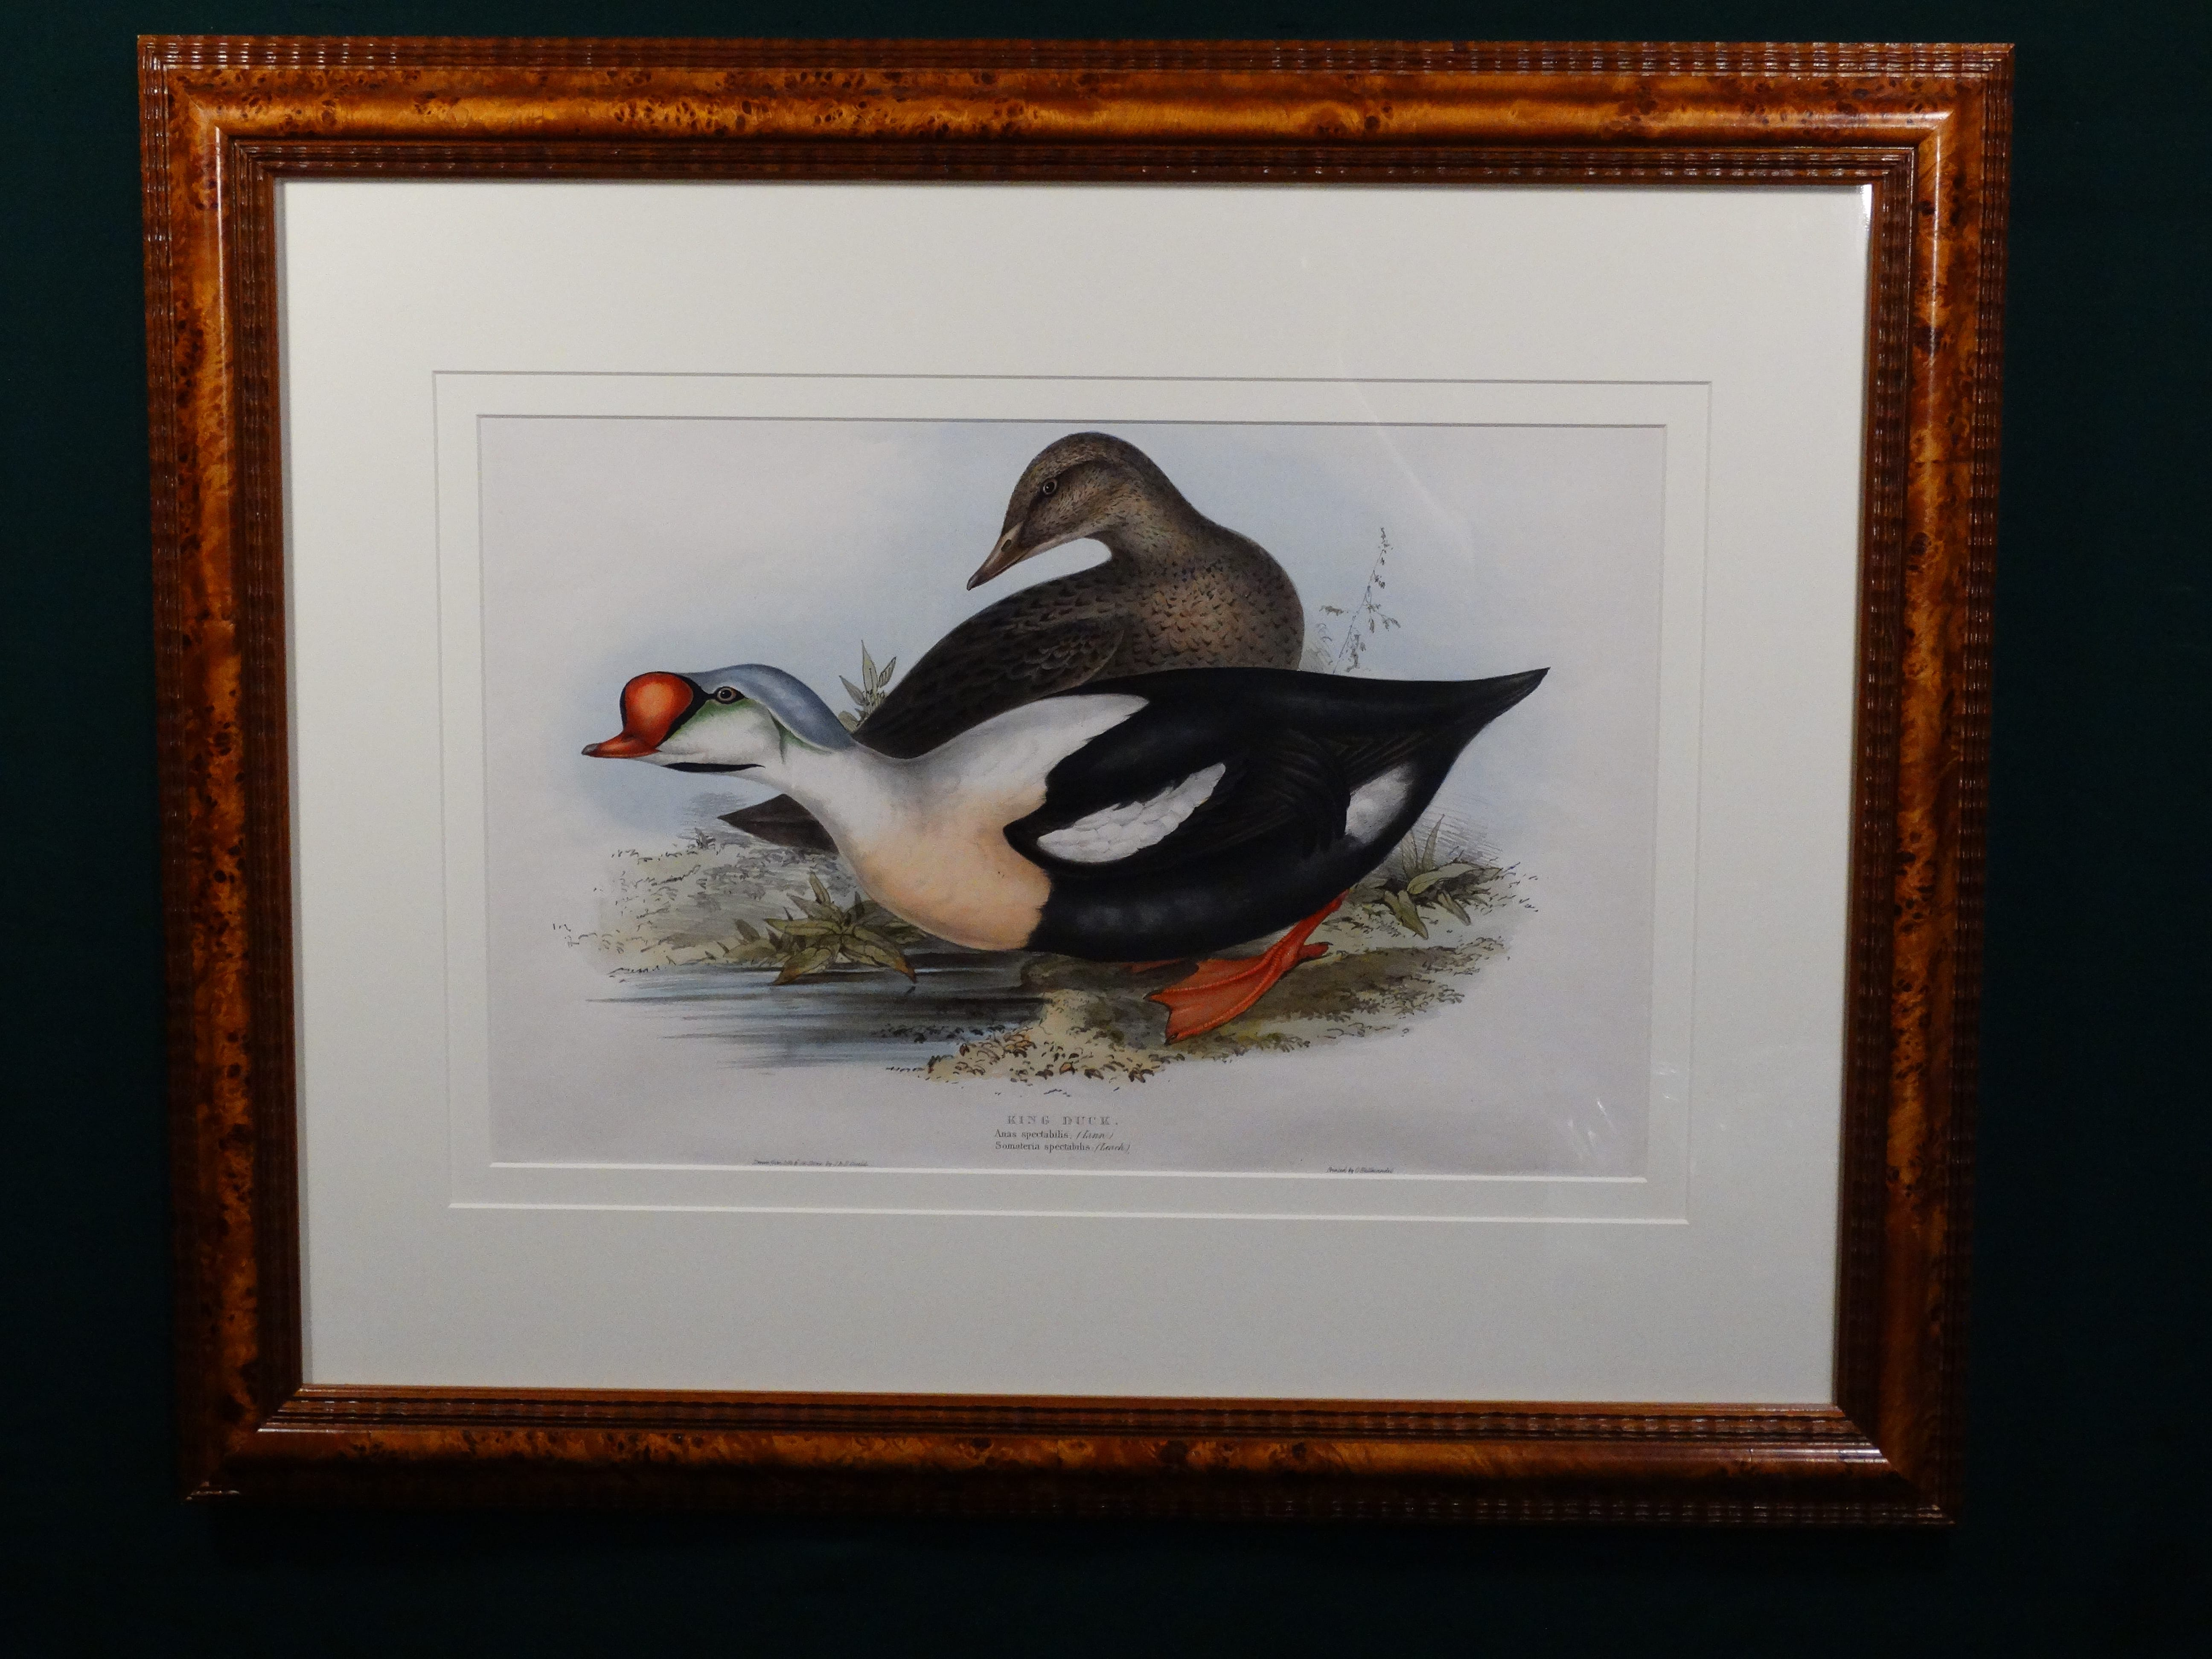 Gould King Duck. Fabulous antique duck print by John Gould. Hand colored antique lithograph from Birds of Great Britain c. 1860.